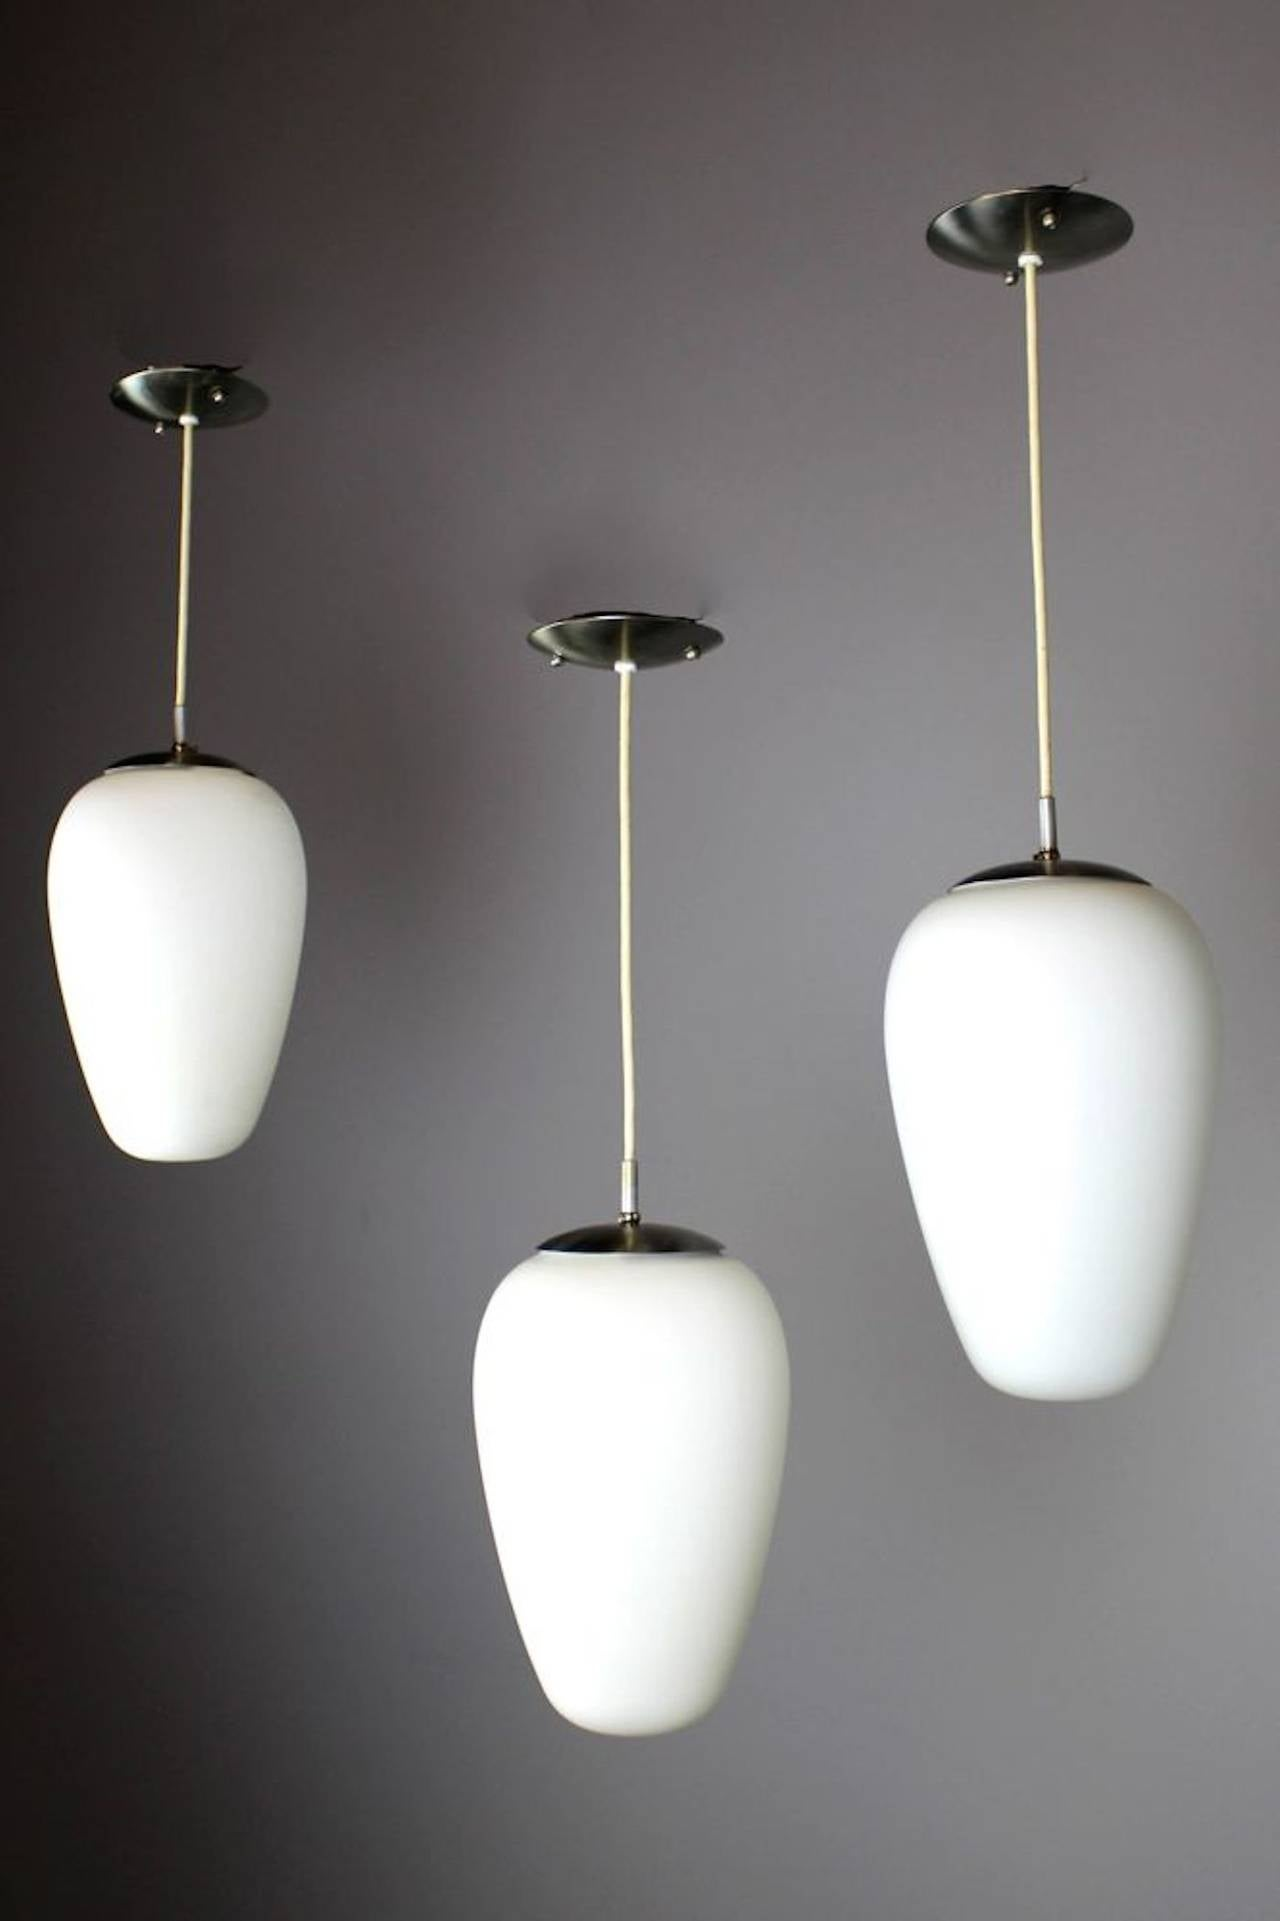 Mid century modern pendant light at 1stdibs for Mid century modern globe pendant light